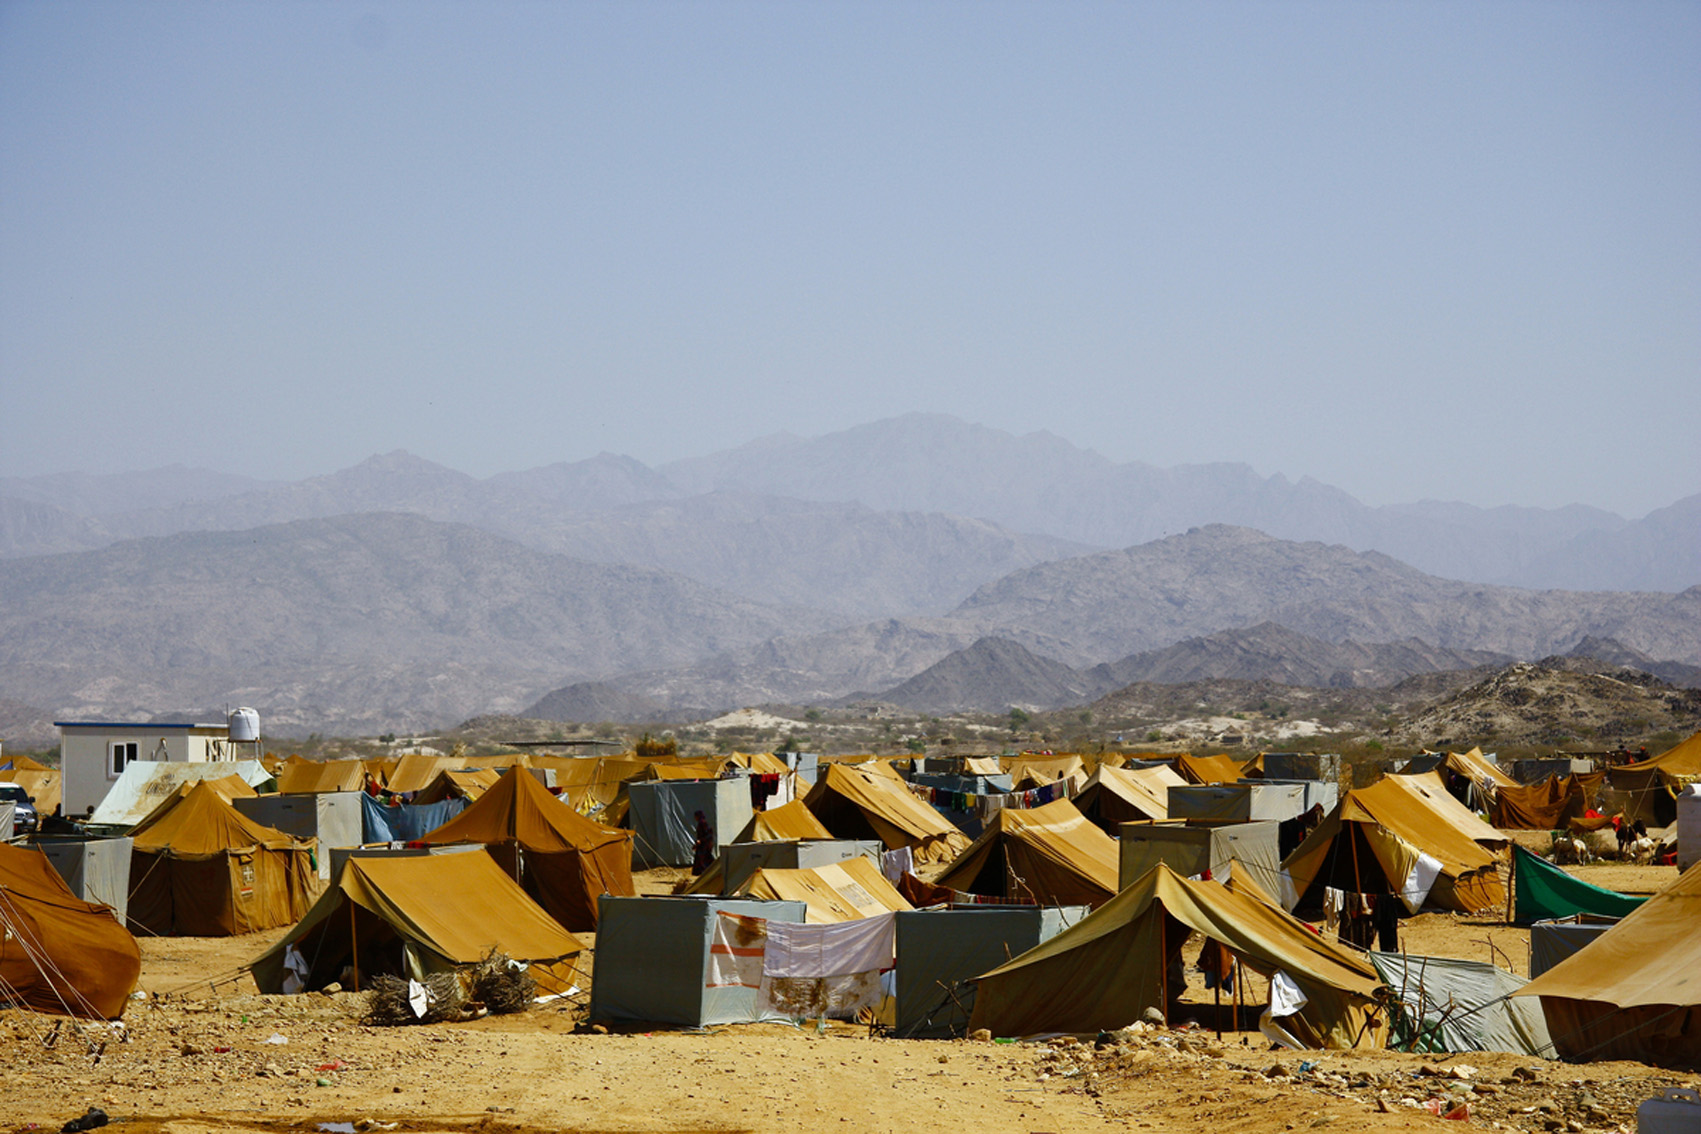 Mazrak camp in the tough mountainous scrublands of Yemen's north-west border with Saudi Arabia is now home to more than 10,000 people displaced by the escalating war between the government and rebels from the Huthi clan